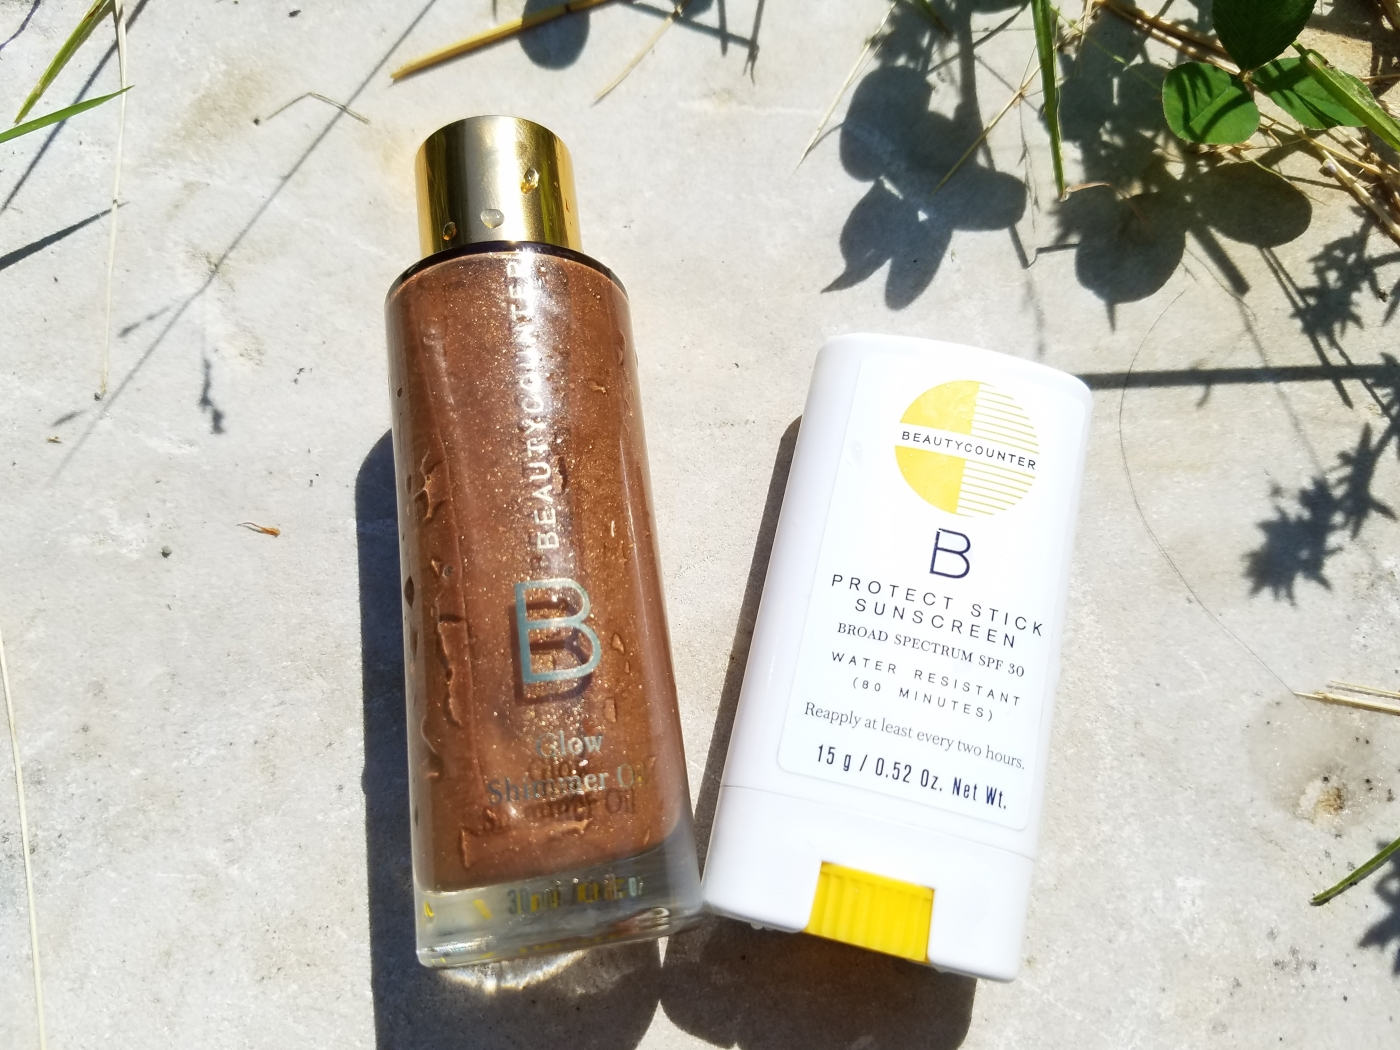 Better Beauty Vermont Glow Shimmer Oil travel size and small Protect Stick Sunscreen